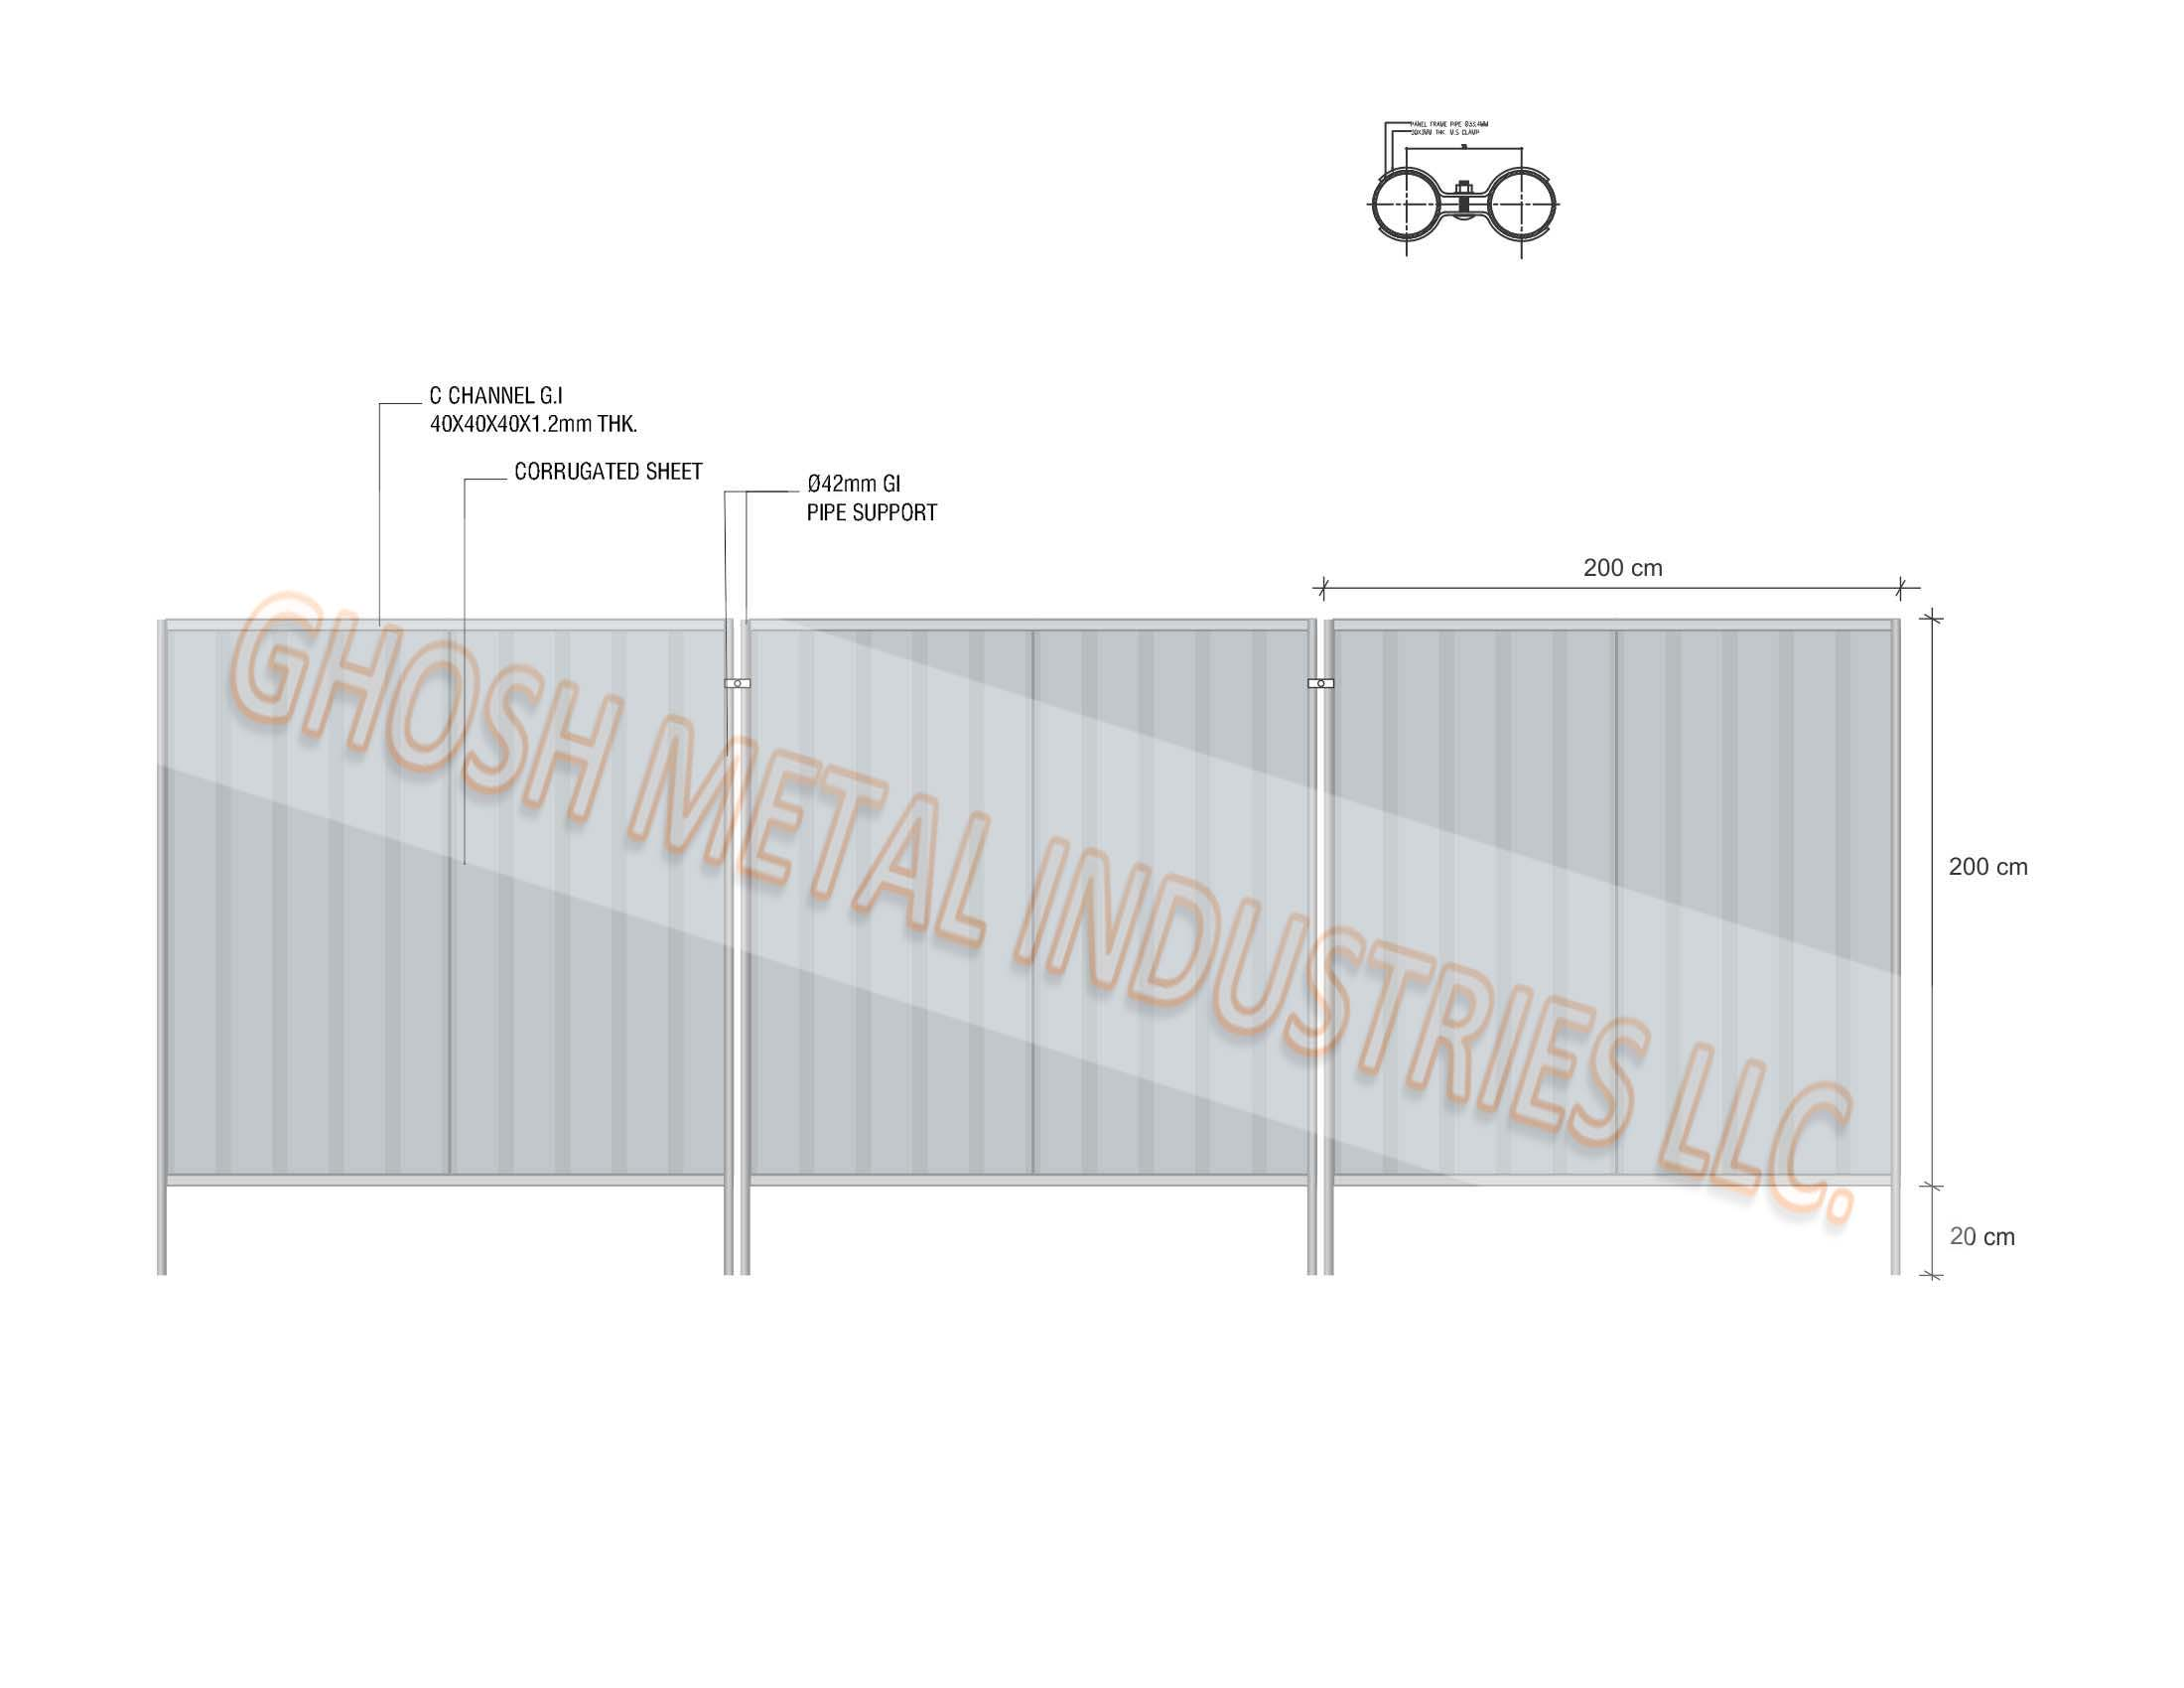 Temporary side hoarding corrugated fencing panels manufacturer in temporary side hoarding corrugated fencing panels manufacturer in uae dubai abu dhabi ajman baanklon Image collections